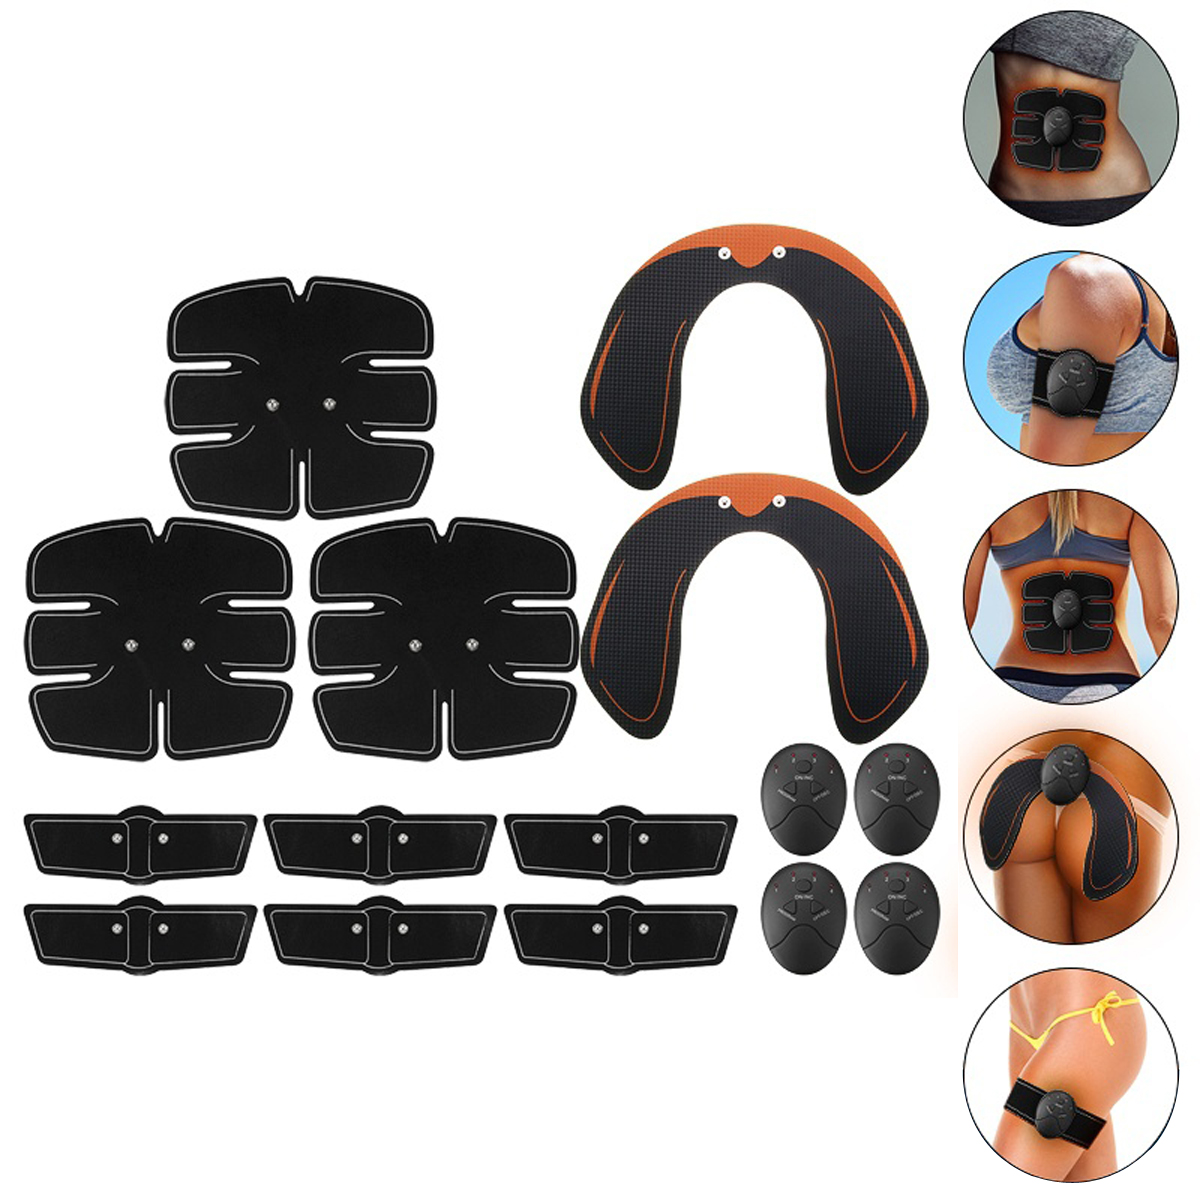 KALAOD 15Pcs/Set Hip Trainer Abdominal Arm Muscle Training Body Shape Sports Smart Fitness ABS